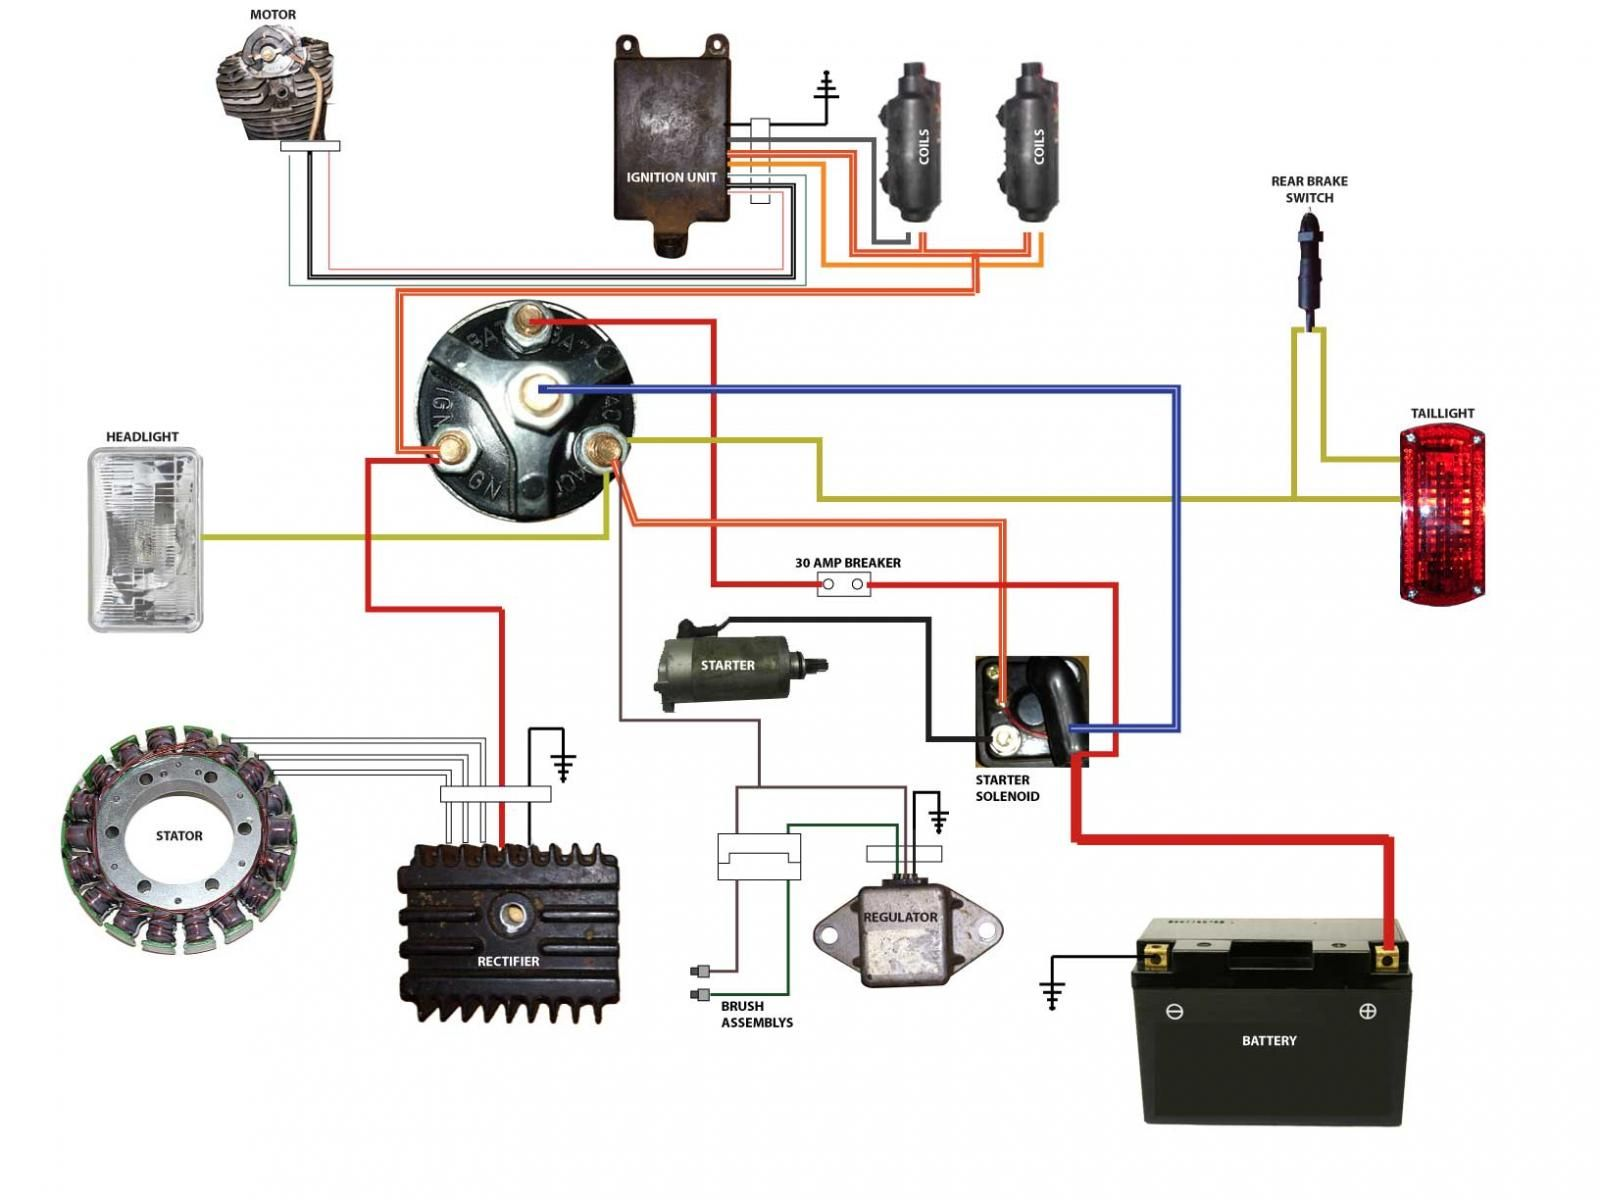 simplified wiring diagram for xs400 cafe | Motorcycle wiring ... on